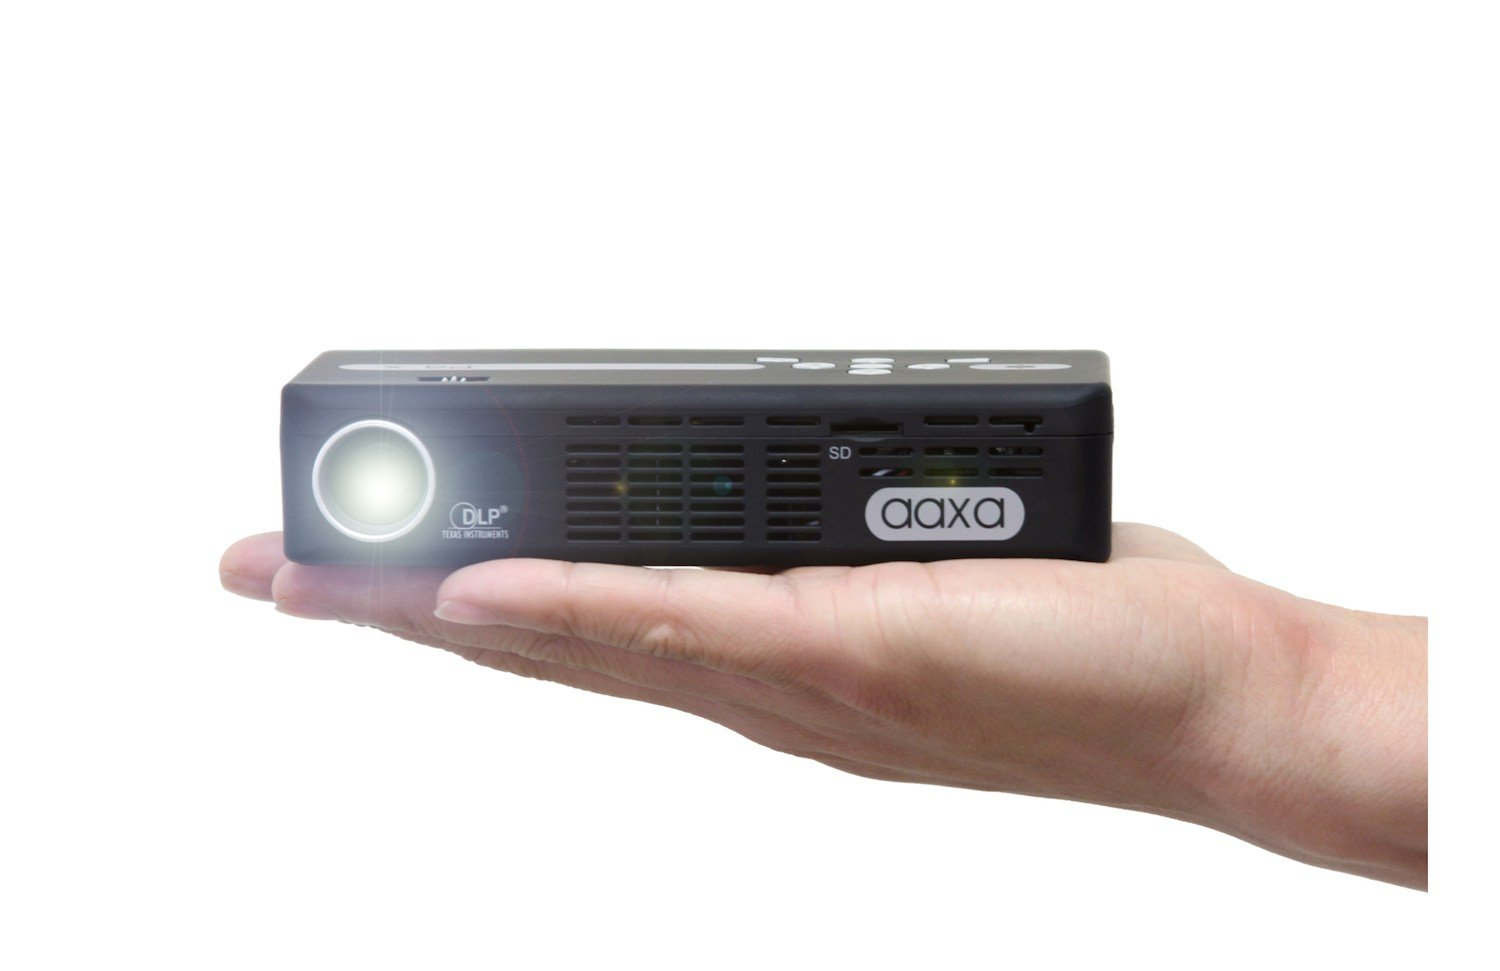 AAXA P4 P4X Pico Projector, 125 Lumens with 90 Minute Battery Life, Pocket Size, 15,000 Hour LED Life, Mini-HDMI, Mini-VGA, Media Player, DLP Projector